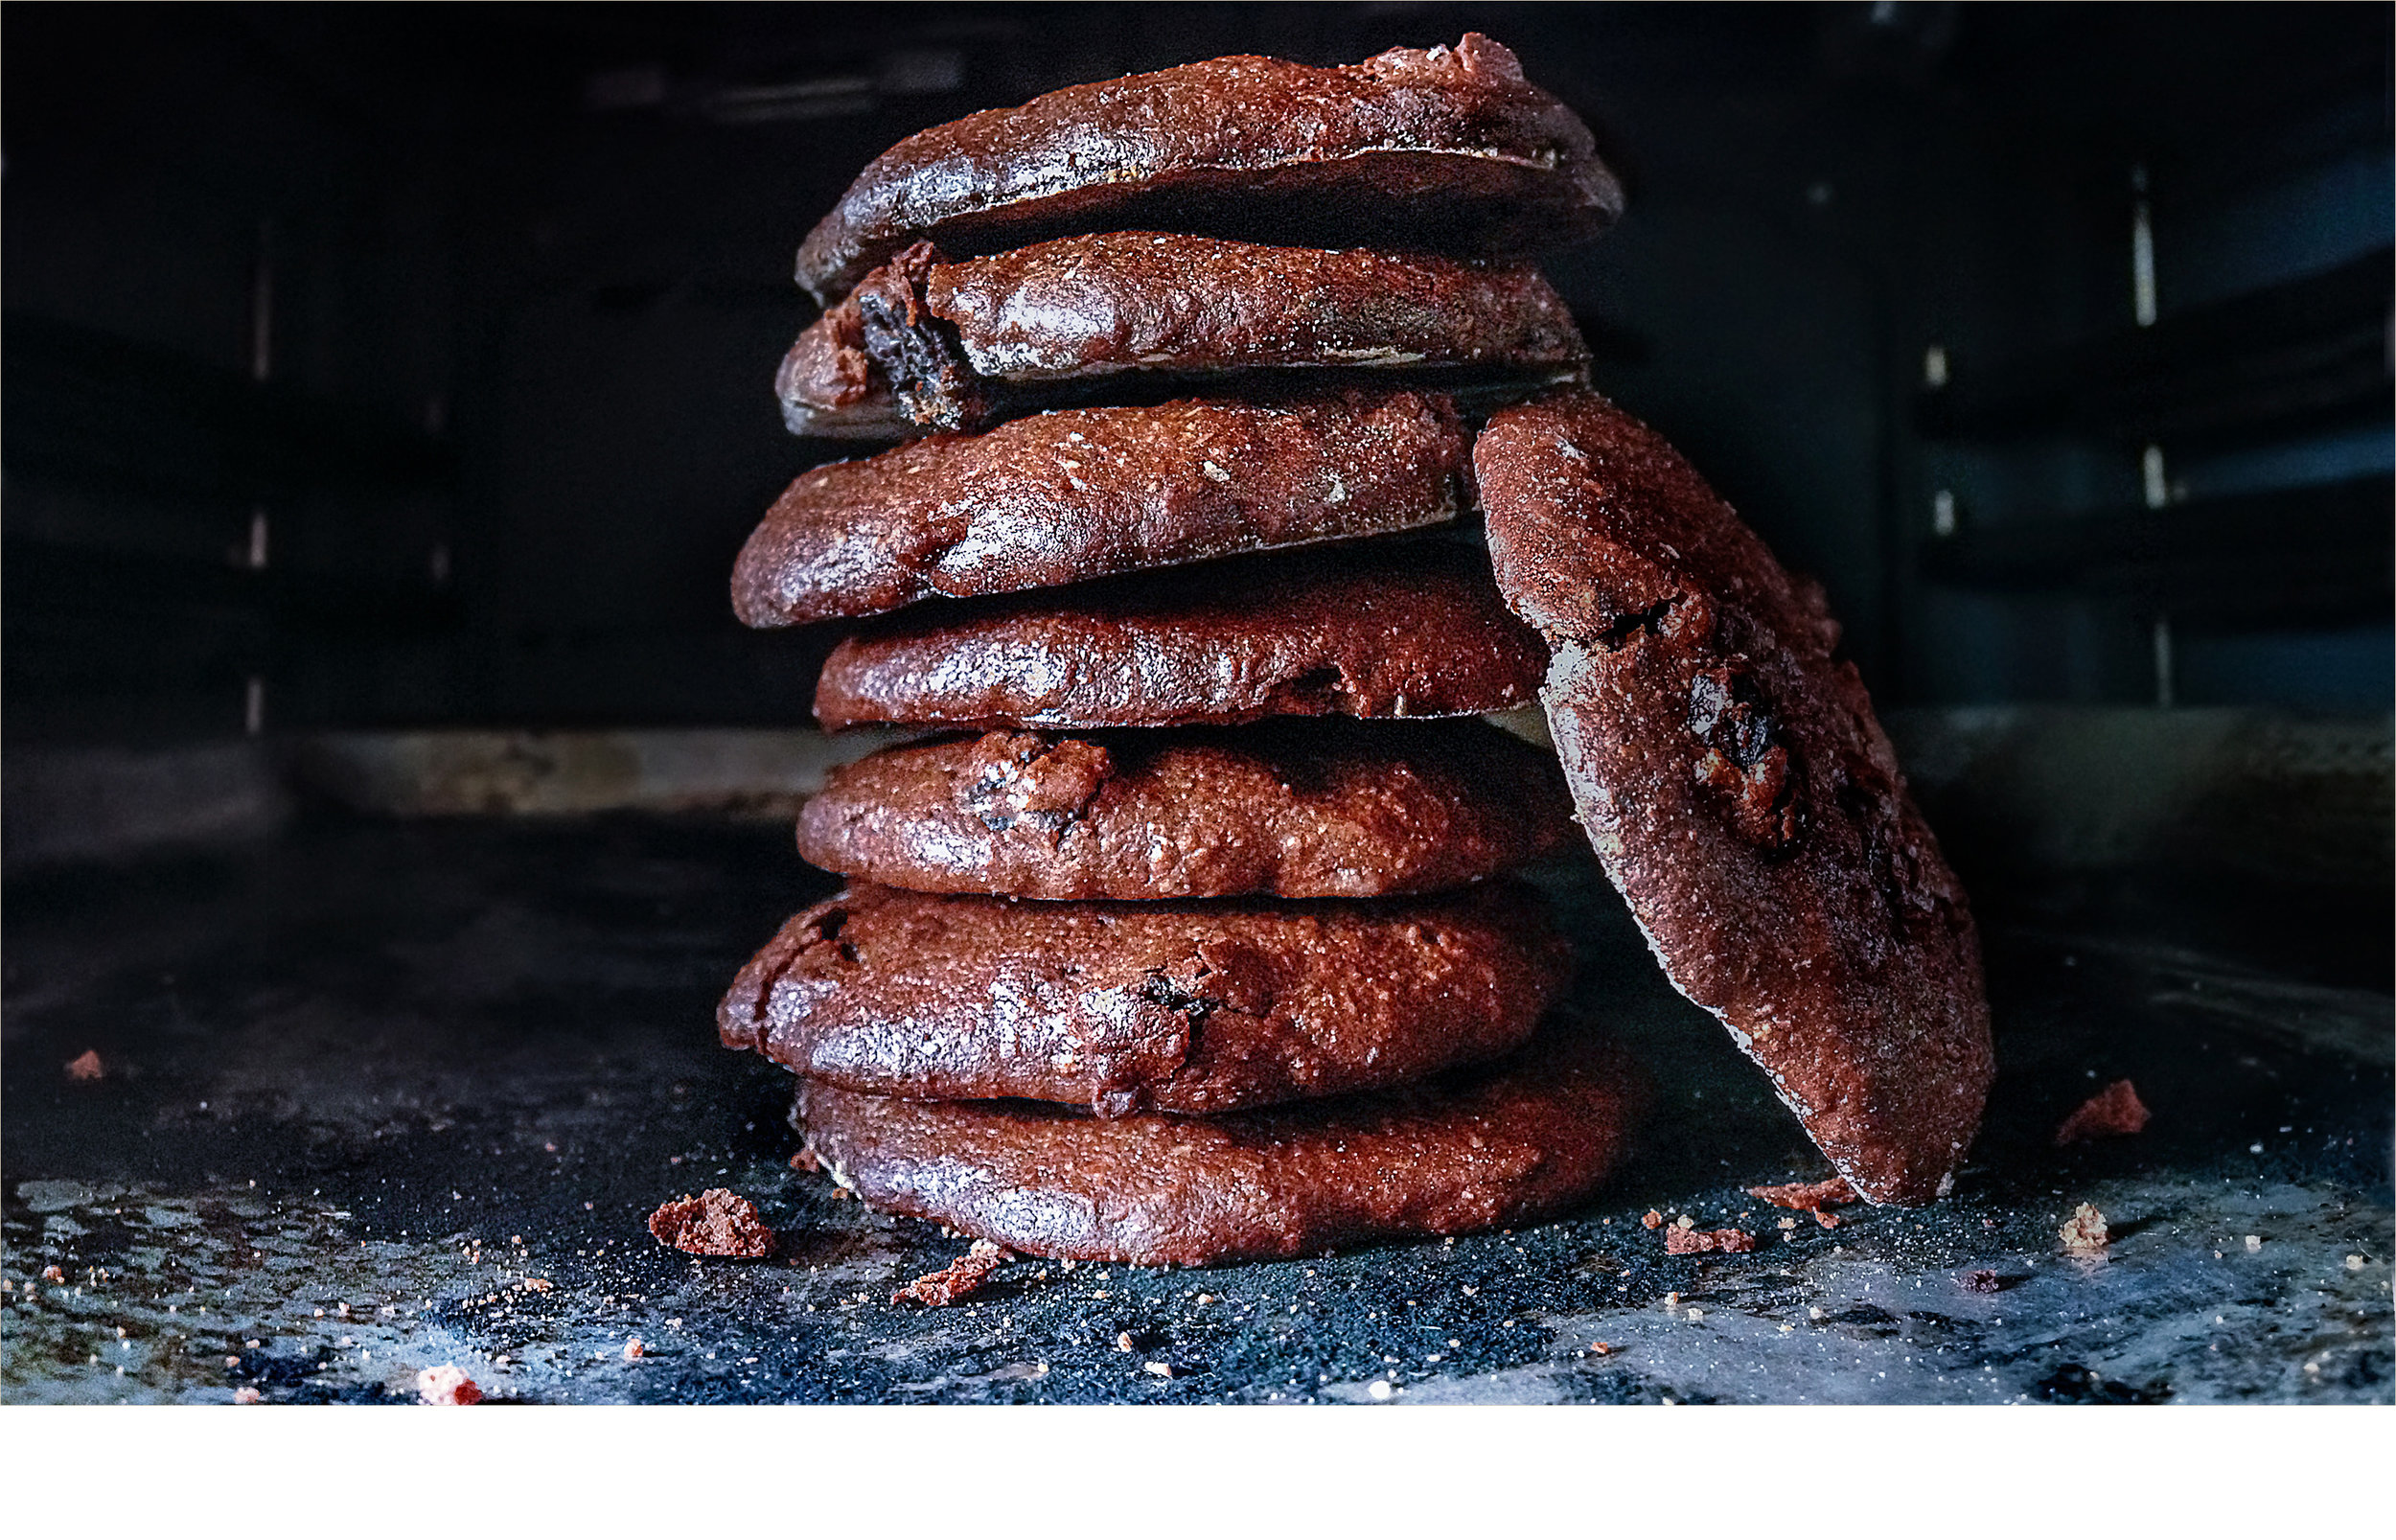 20150906-CasualFood-GalletasChoco-v02.jpg